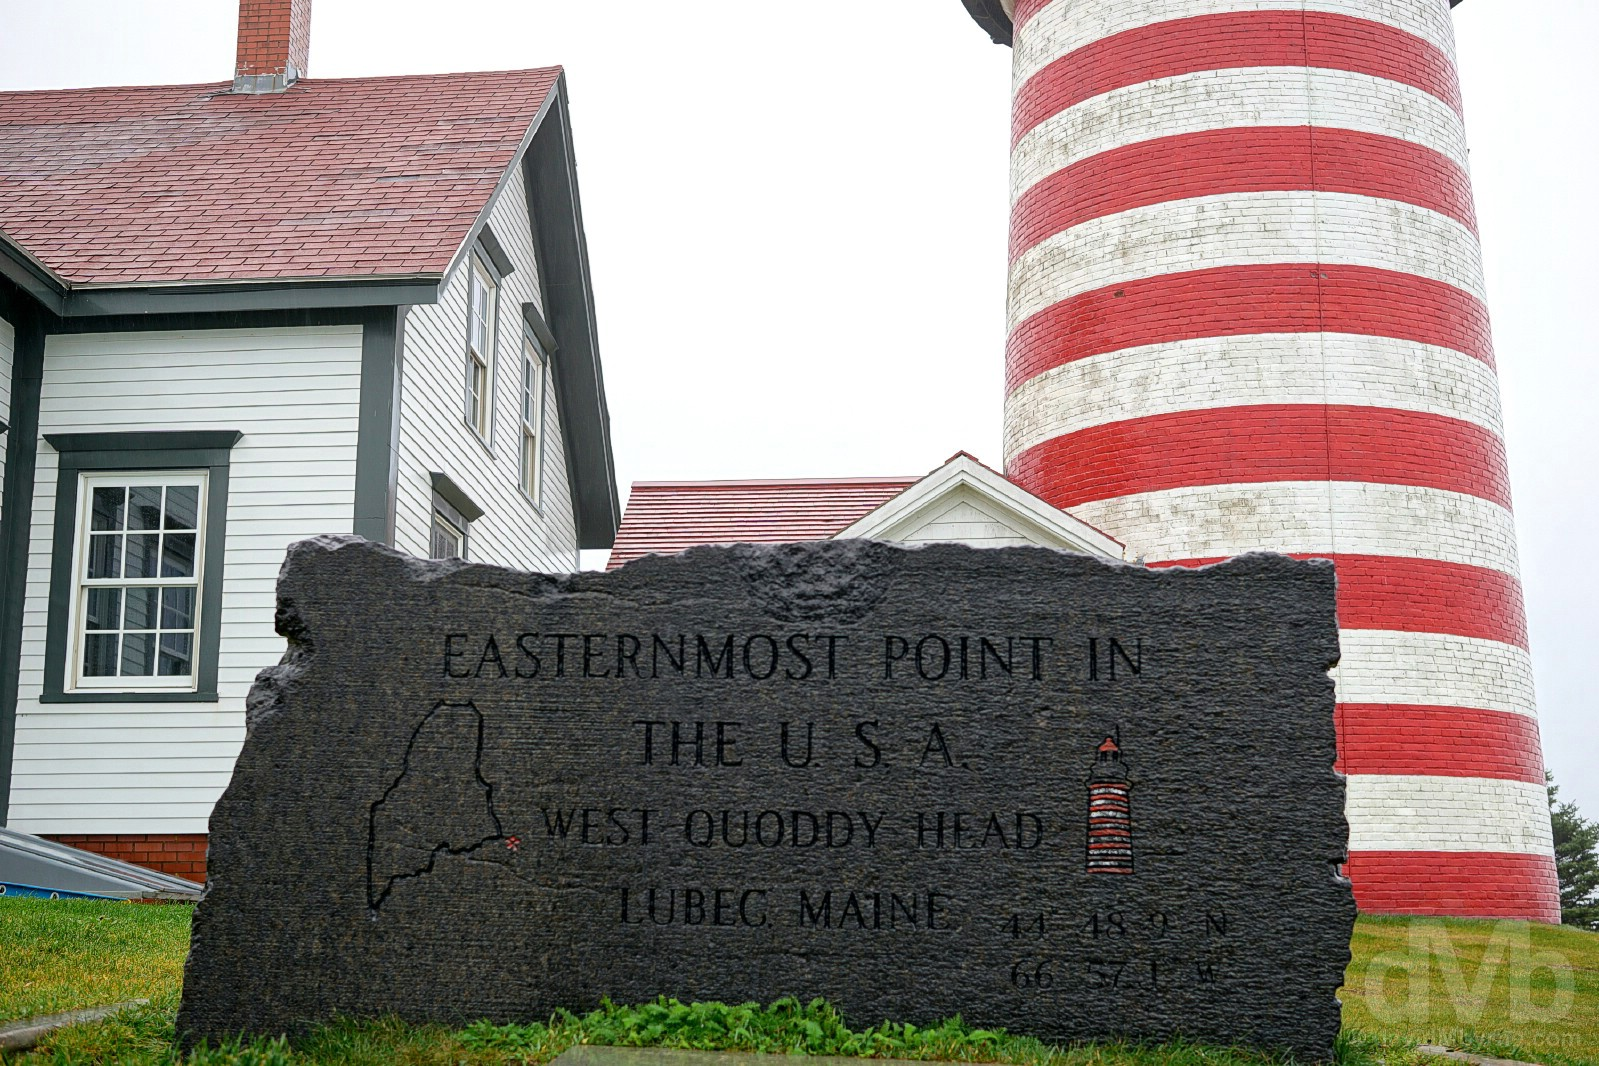 The Easternmost point in the USA. West Quoddy Head, Lubec, Maine. October 26, 2017.